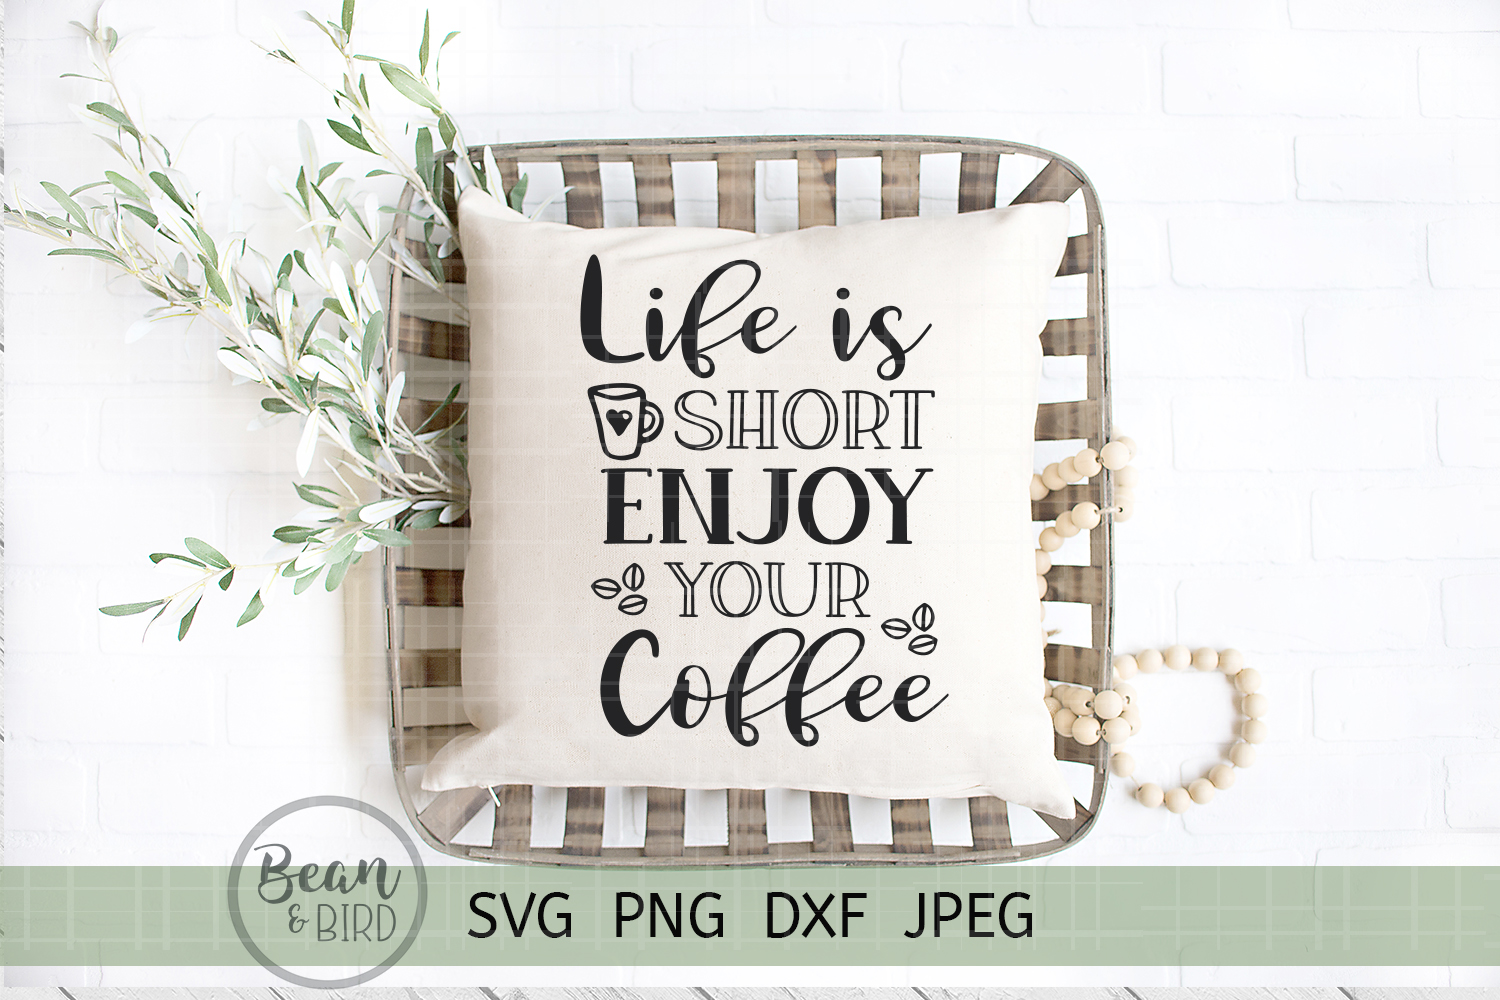 Download Free Life Is Short Enjoy Your Coffee Graphic By Jessica Maike for Cricut Explore, Silhouette and other cutting machines.